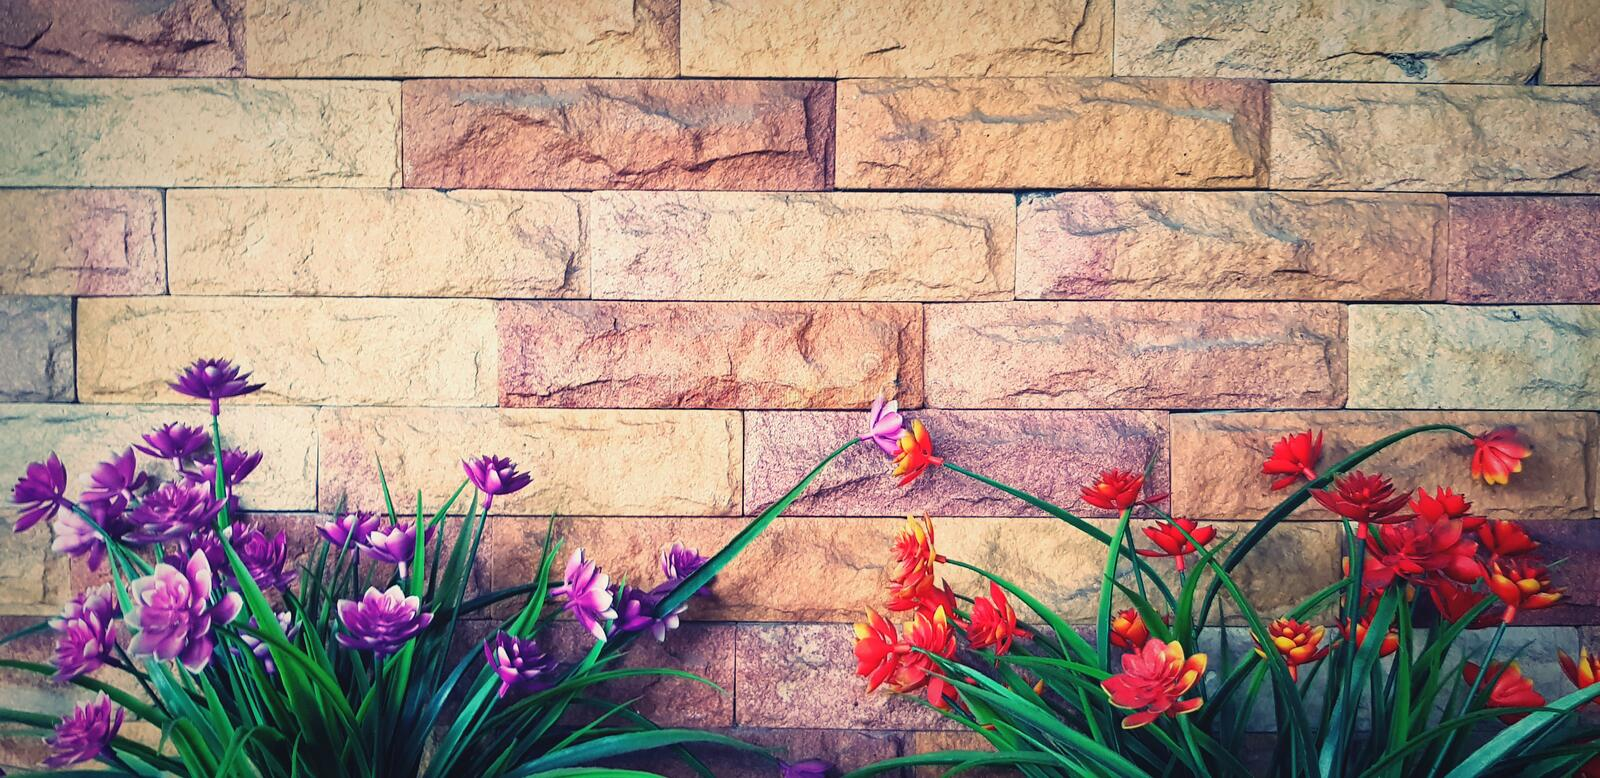 Beautiful orange or red flower and purple or violet flower blooming on grunge brick wall or wallpaper royalty free stock image